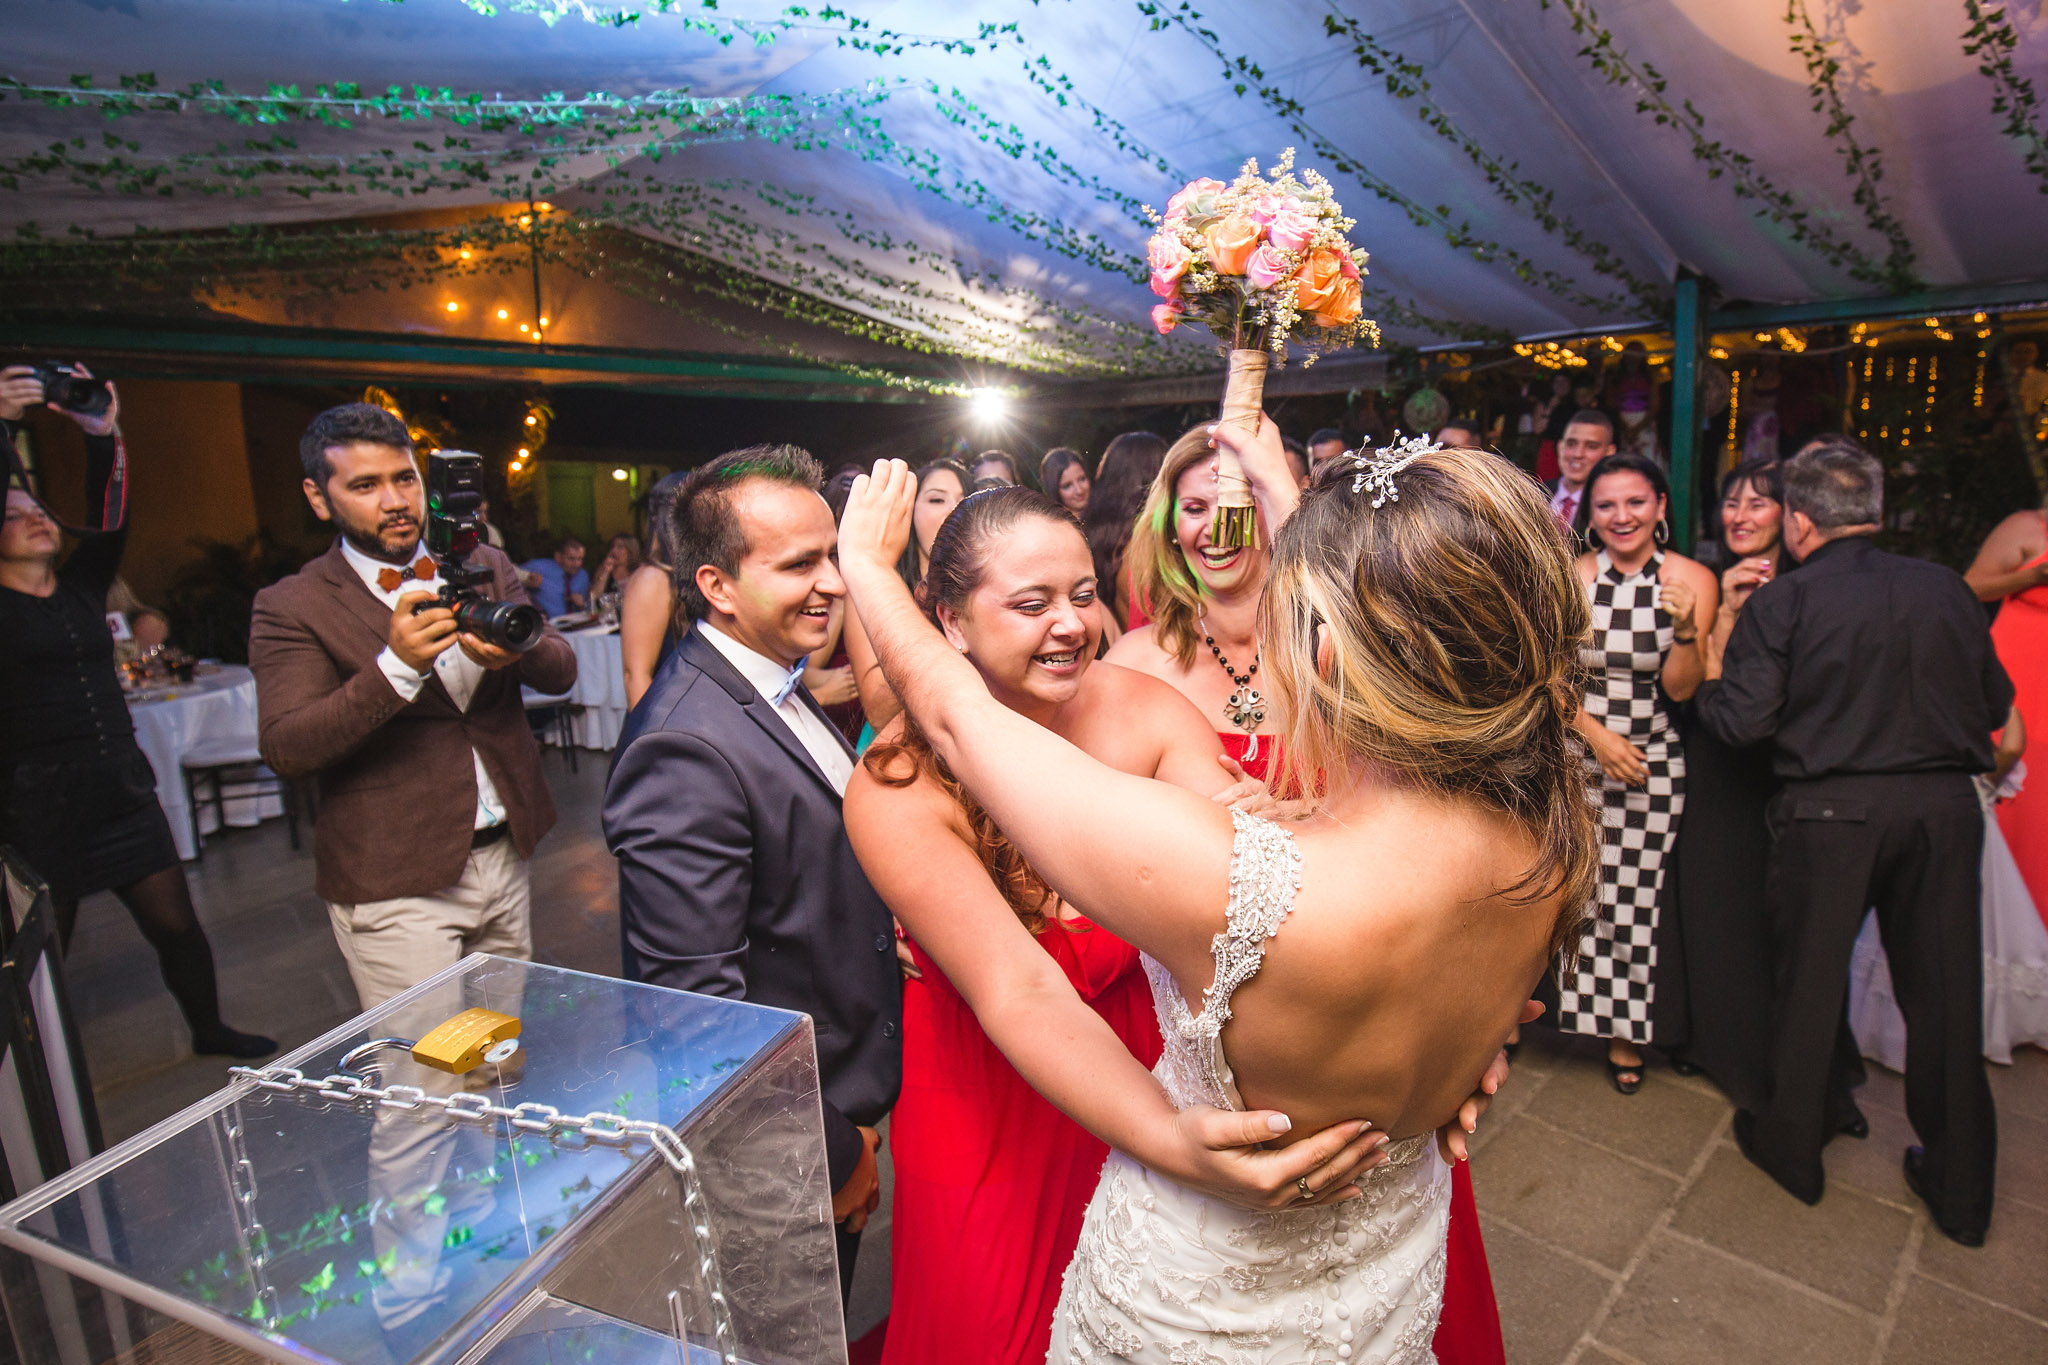 wedding-travellers-destination-wedding-photography-colombia-medellin-chuscalito-bouquet-toss-alternative-locked-box-key